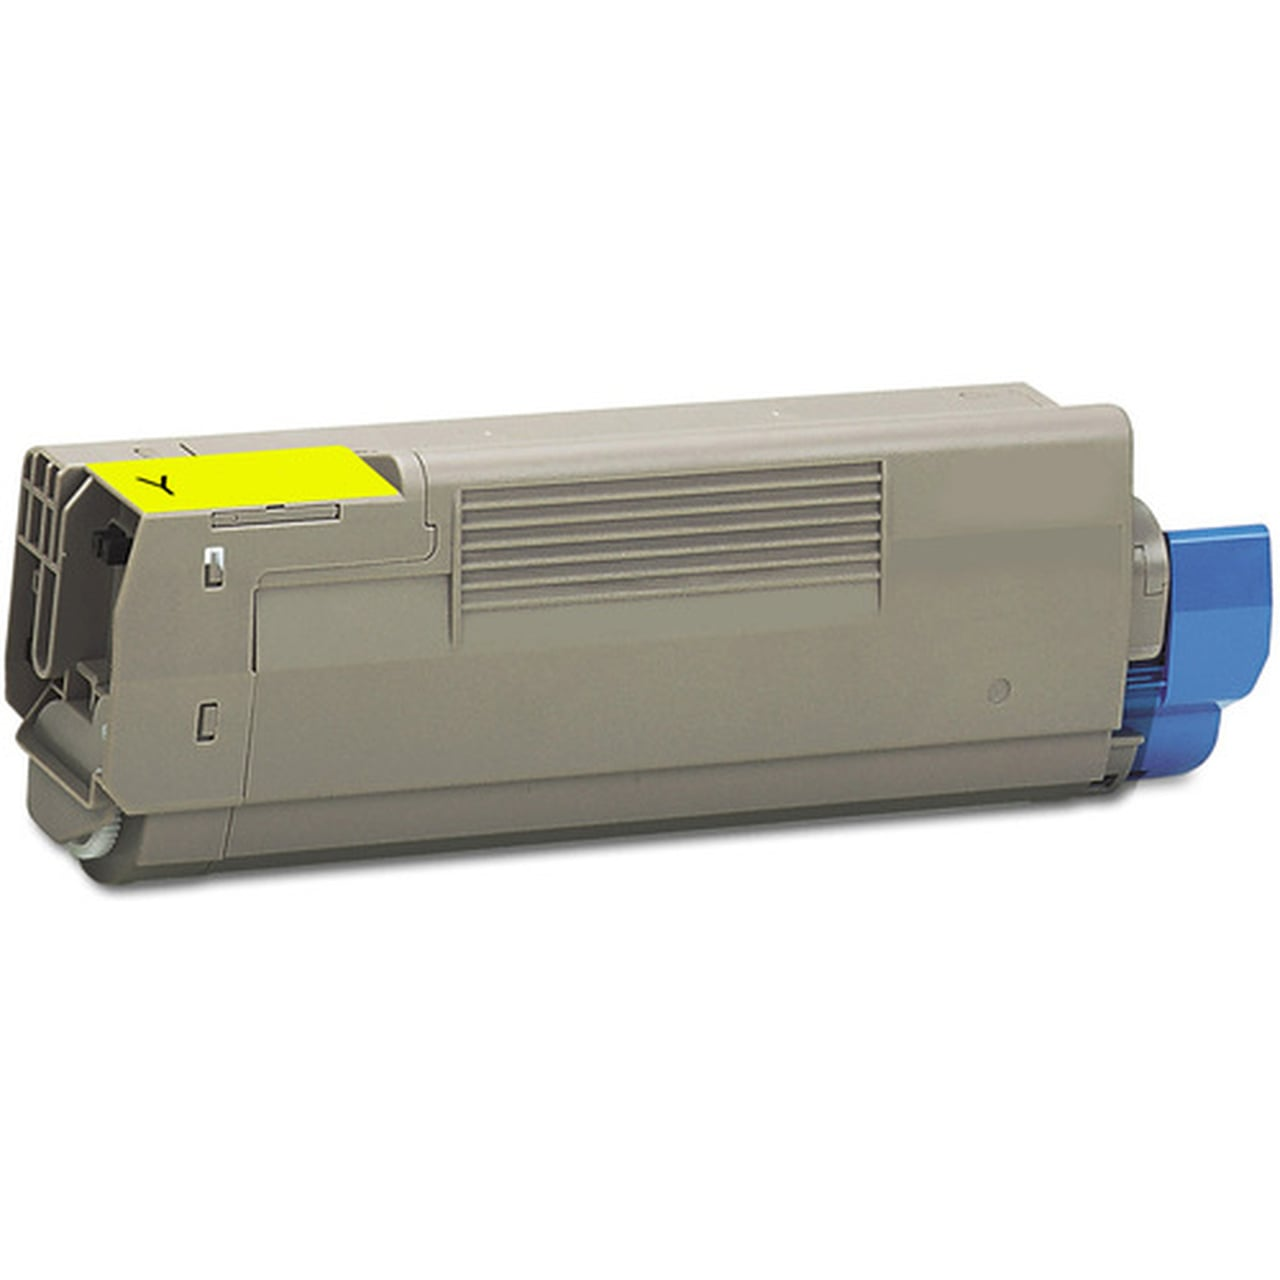 44318601 Toner Cartridge - Okidata Compatible (Yellow)